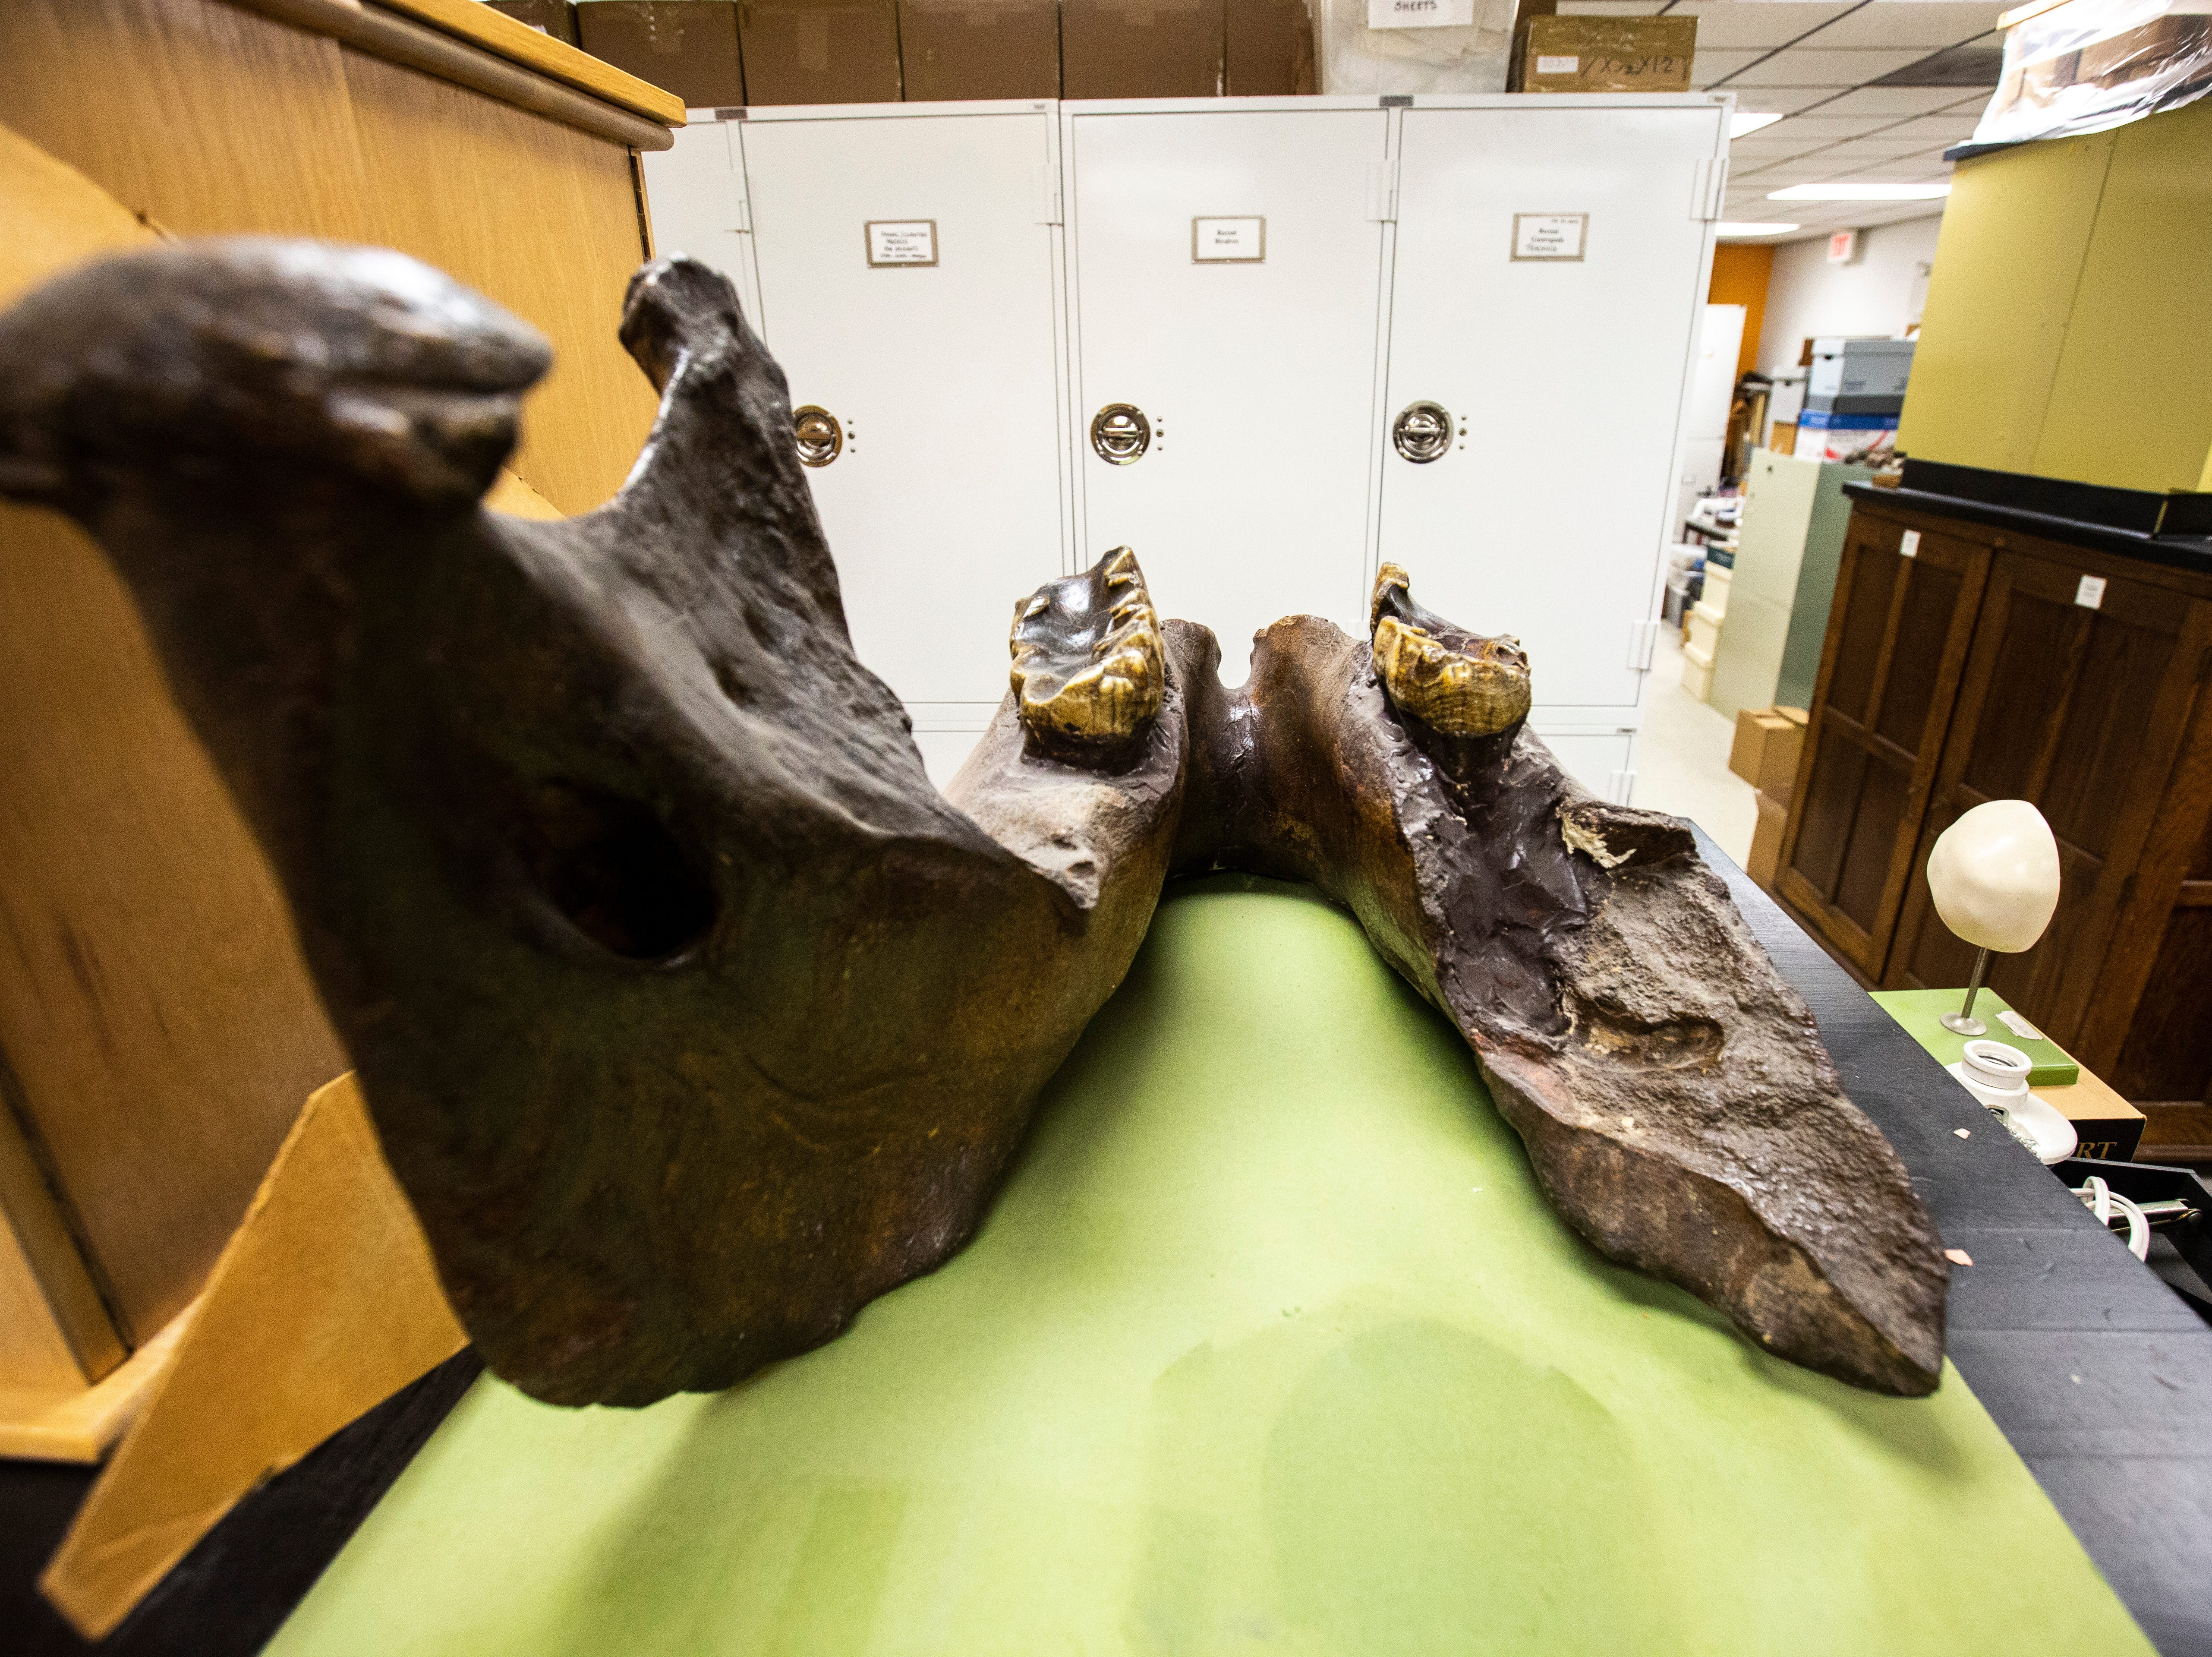 A nearly complete lower jaw bone with worn down teeth of an adult mastodon is displayed, Tuesday, May 14, 2019, at the University of Iowa Paleontology Repository on the University of Iowa campus in Iowa City, Iowa.